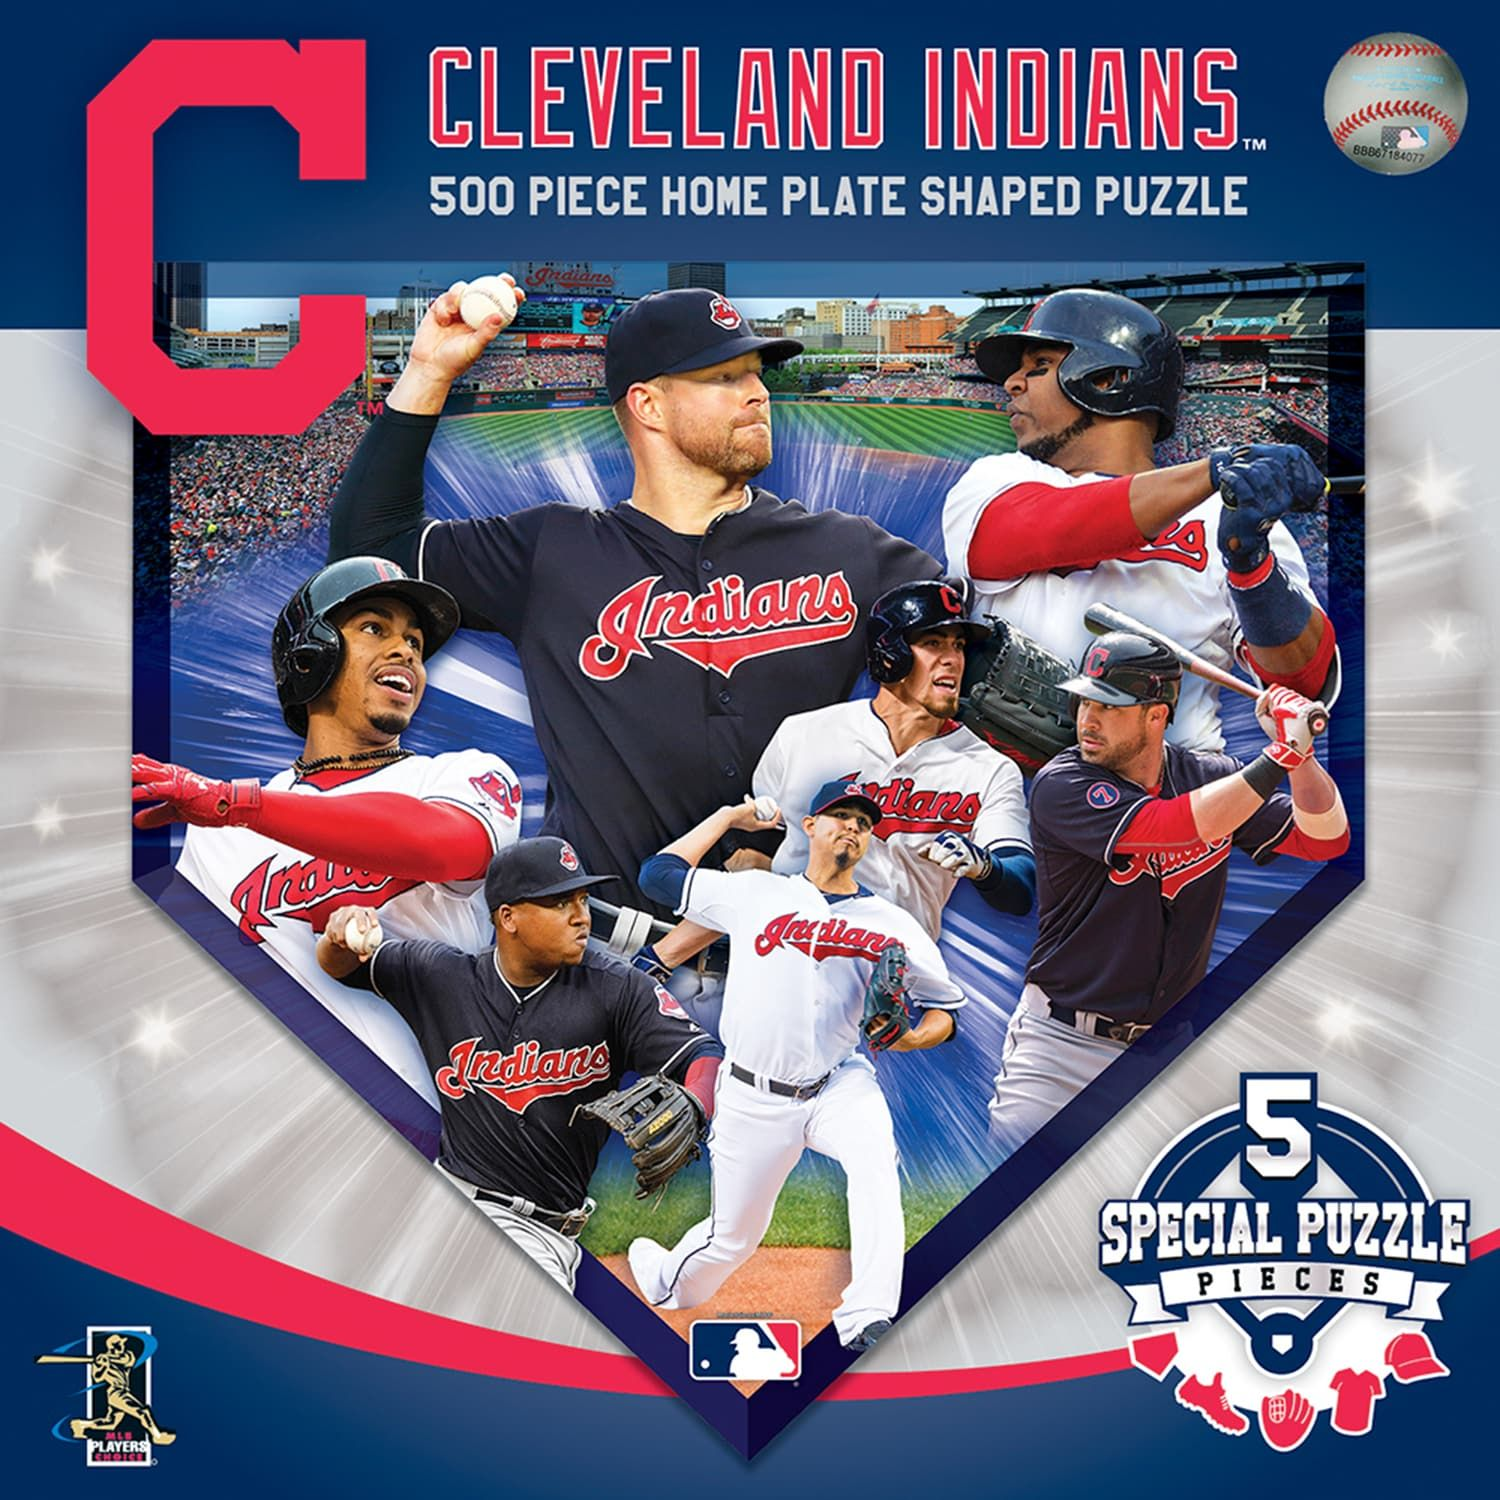 Cleveland Indians Mlb Home Plate Shaped Puzzle Affiliate Mlb Sponsored Indians Cleveland Home Cleveland Indians Shape Puzzles Indians